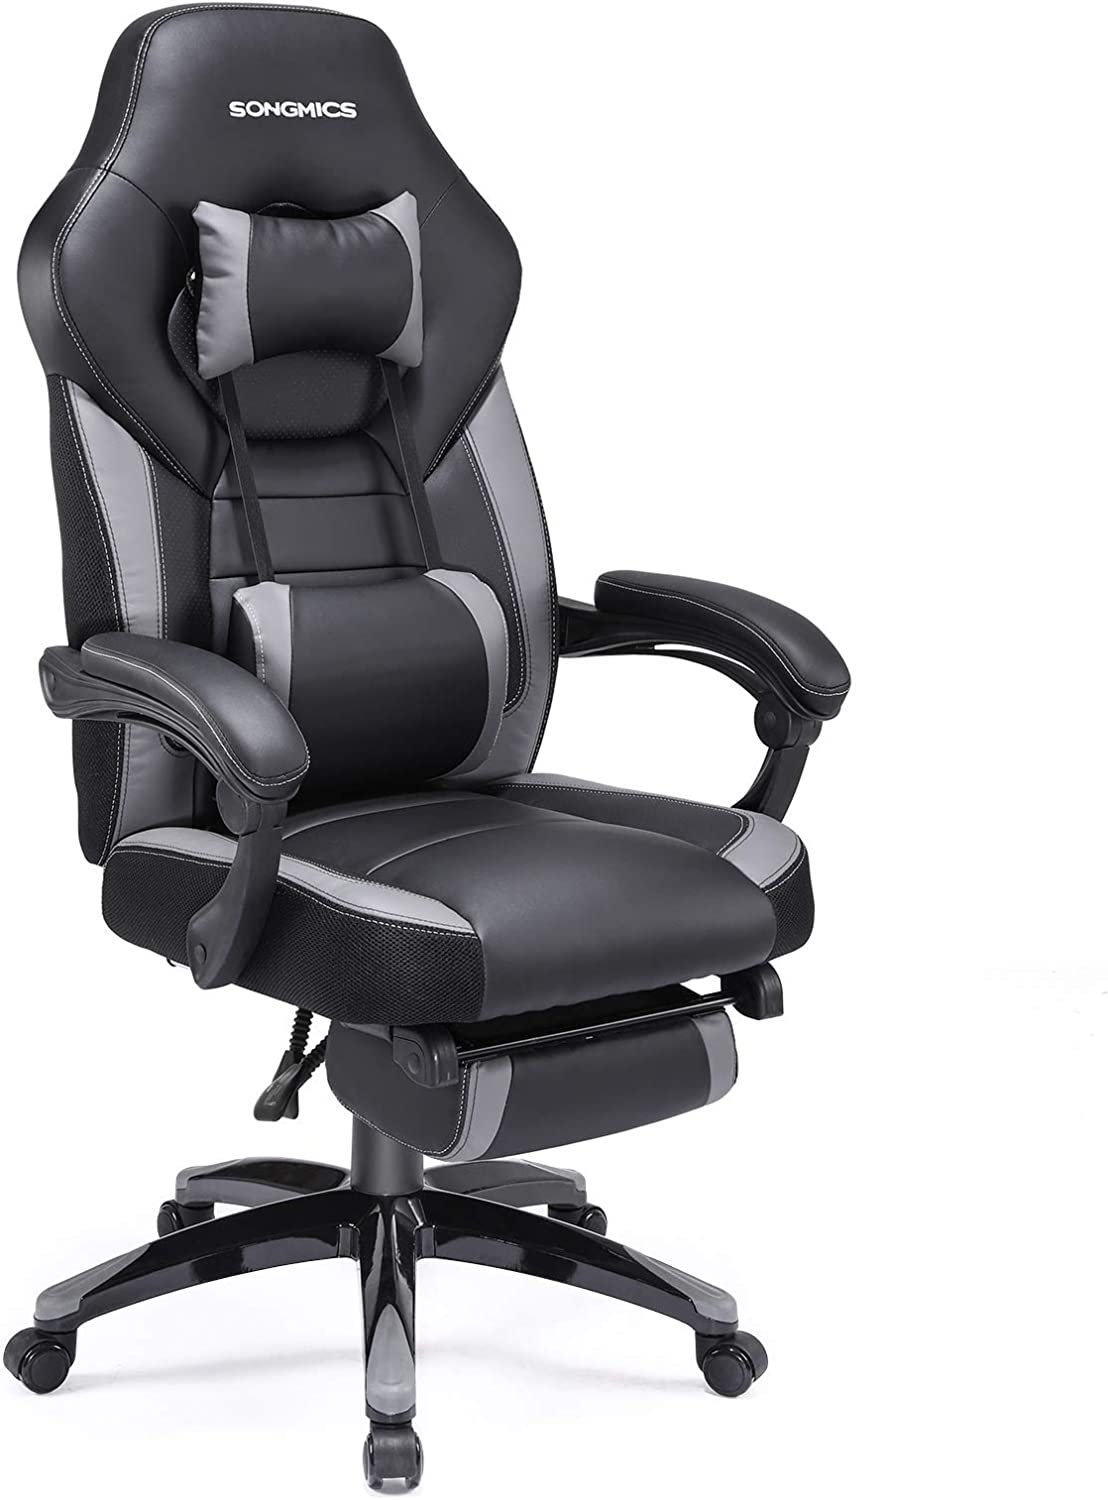 SONGMICS Office Racing Chair with Footrest